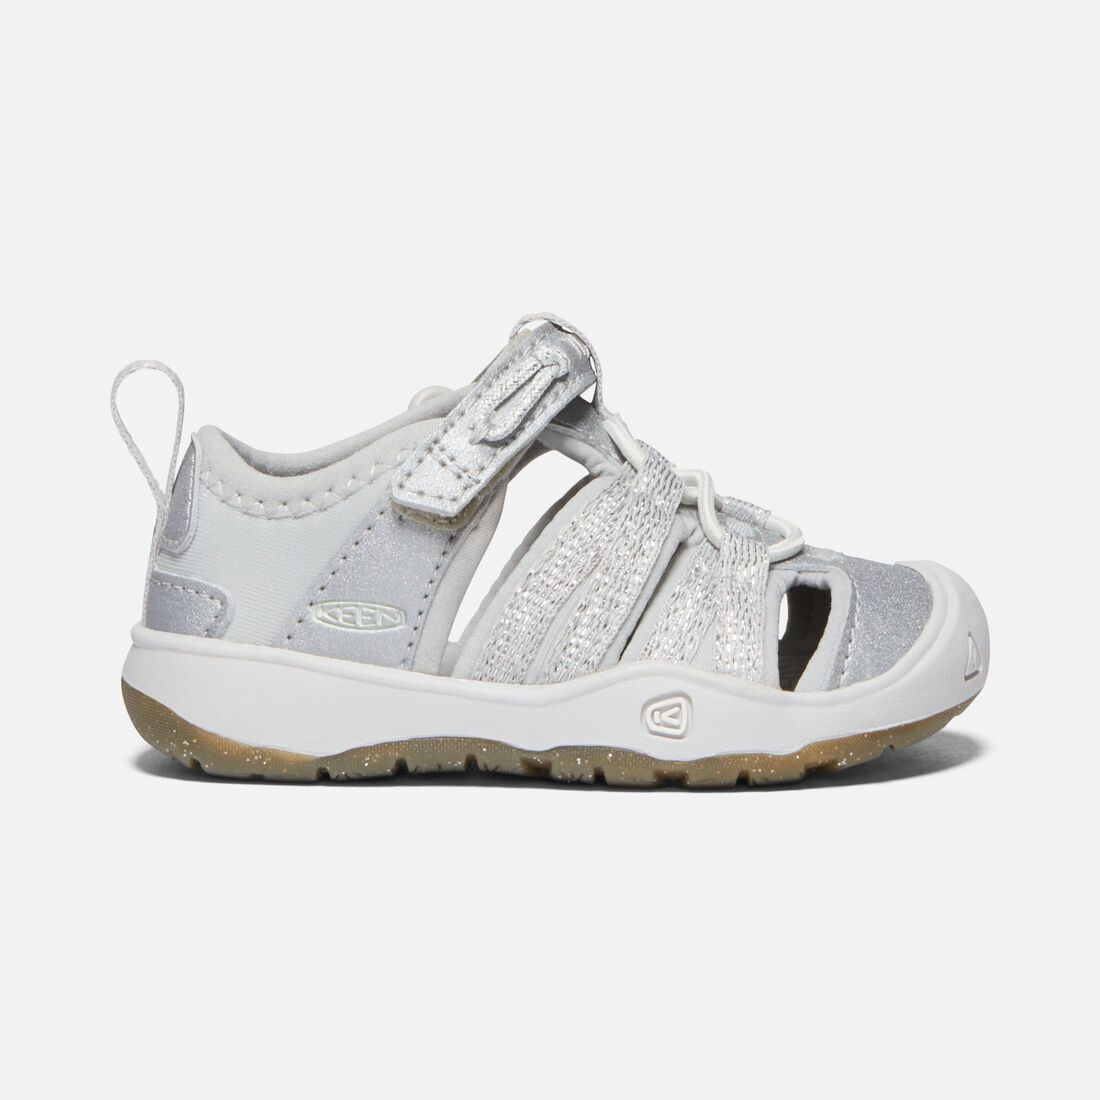 Toddler's MOXIE SANDAL in SILVER - large view.